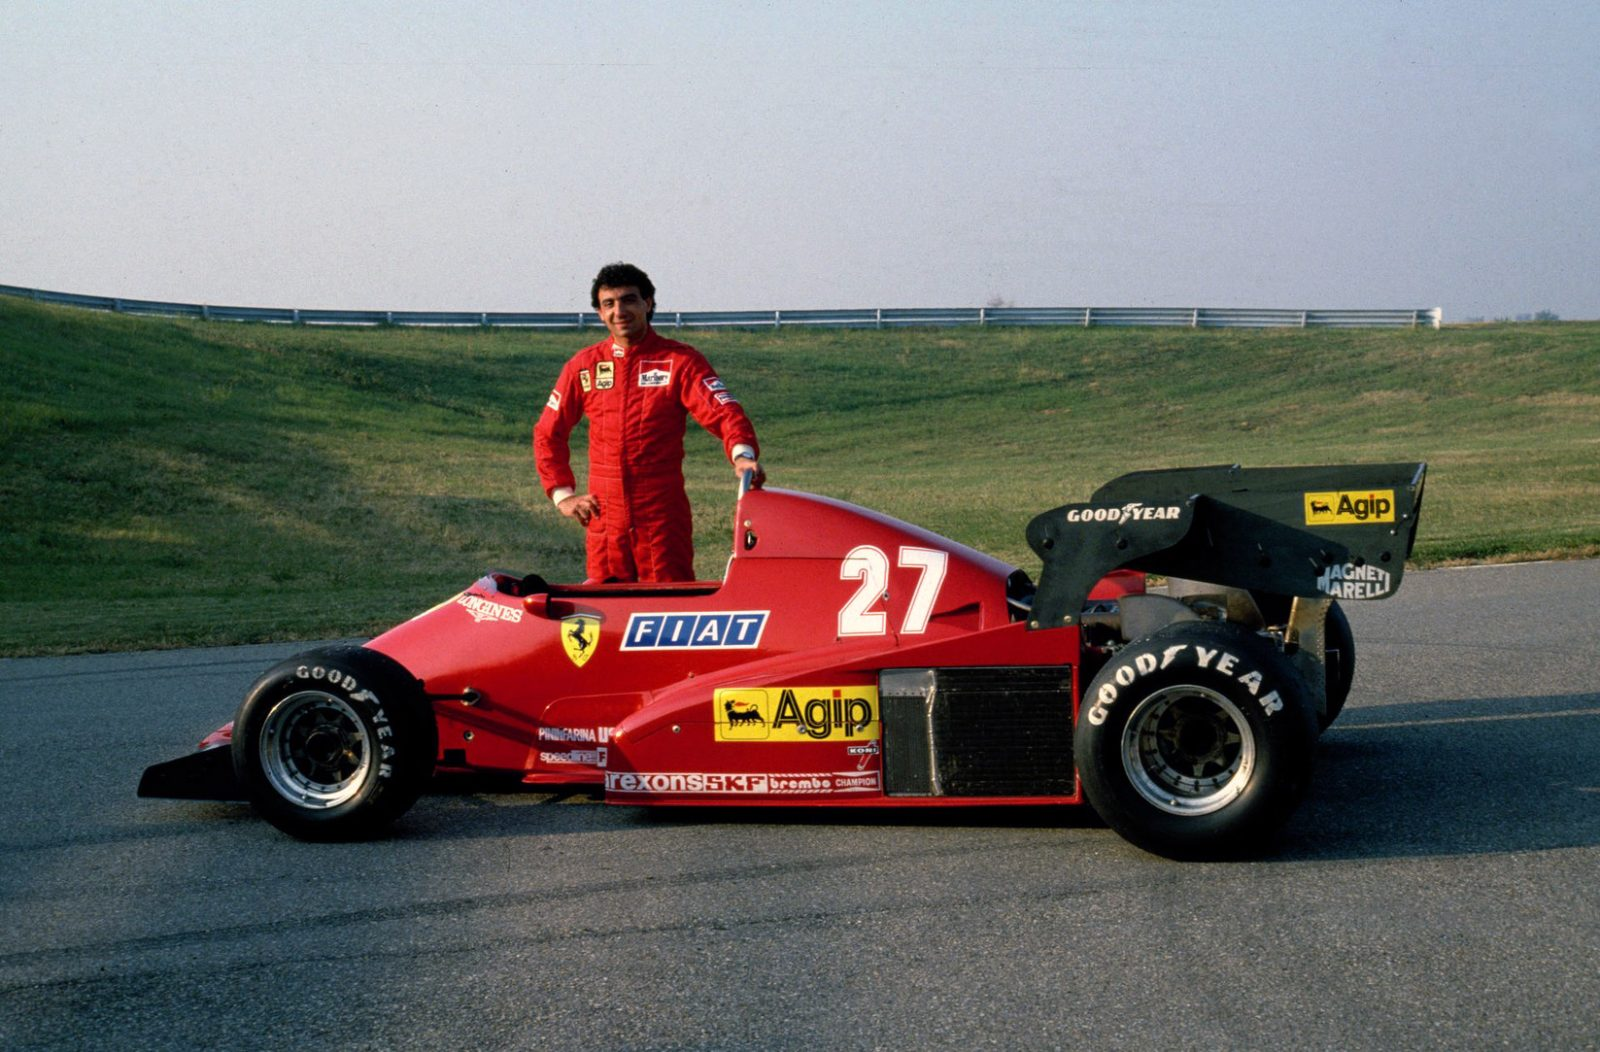 25 avril 2001- Michele Alboreto victime d'un accident fatal